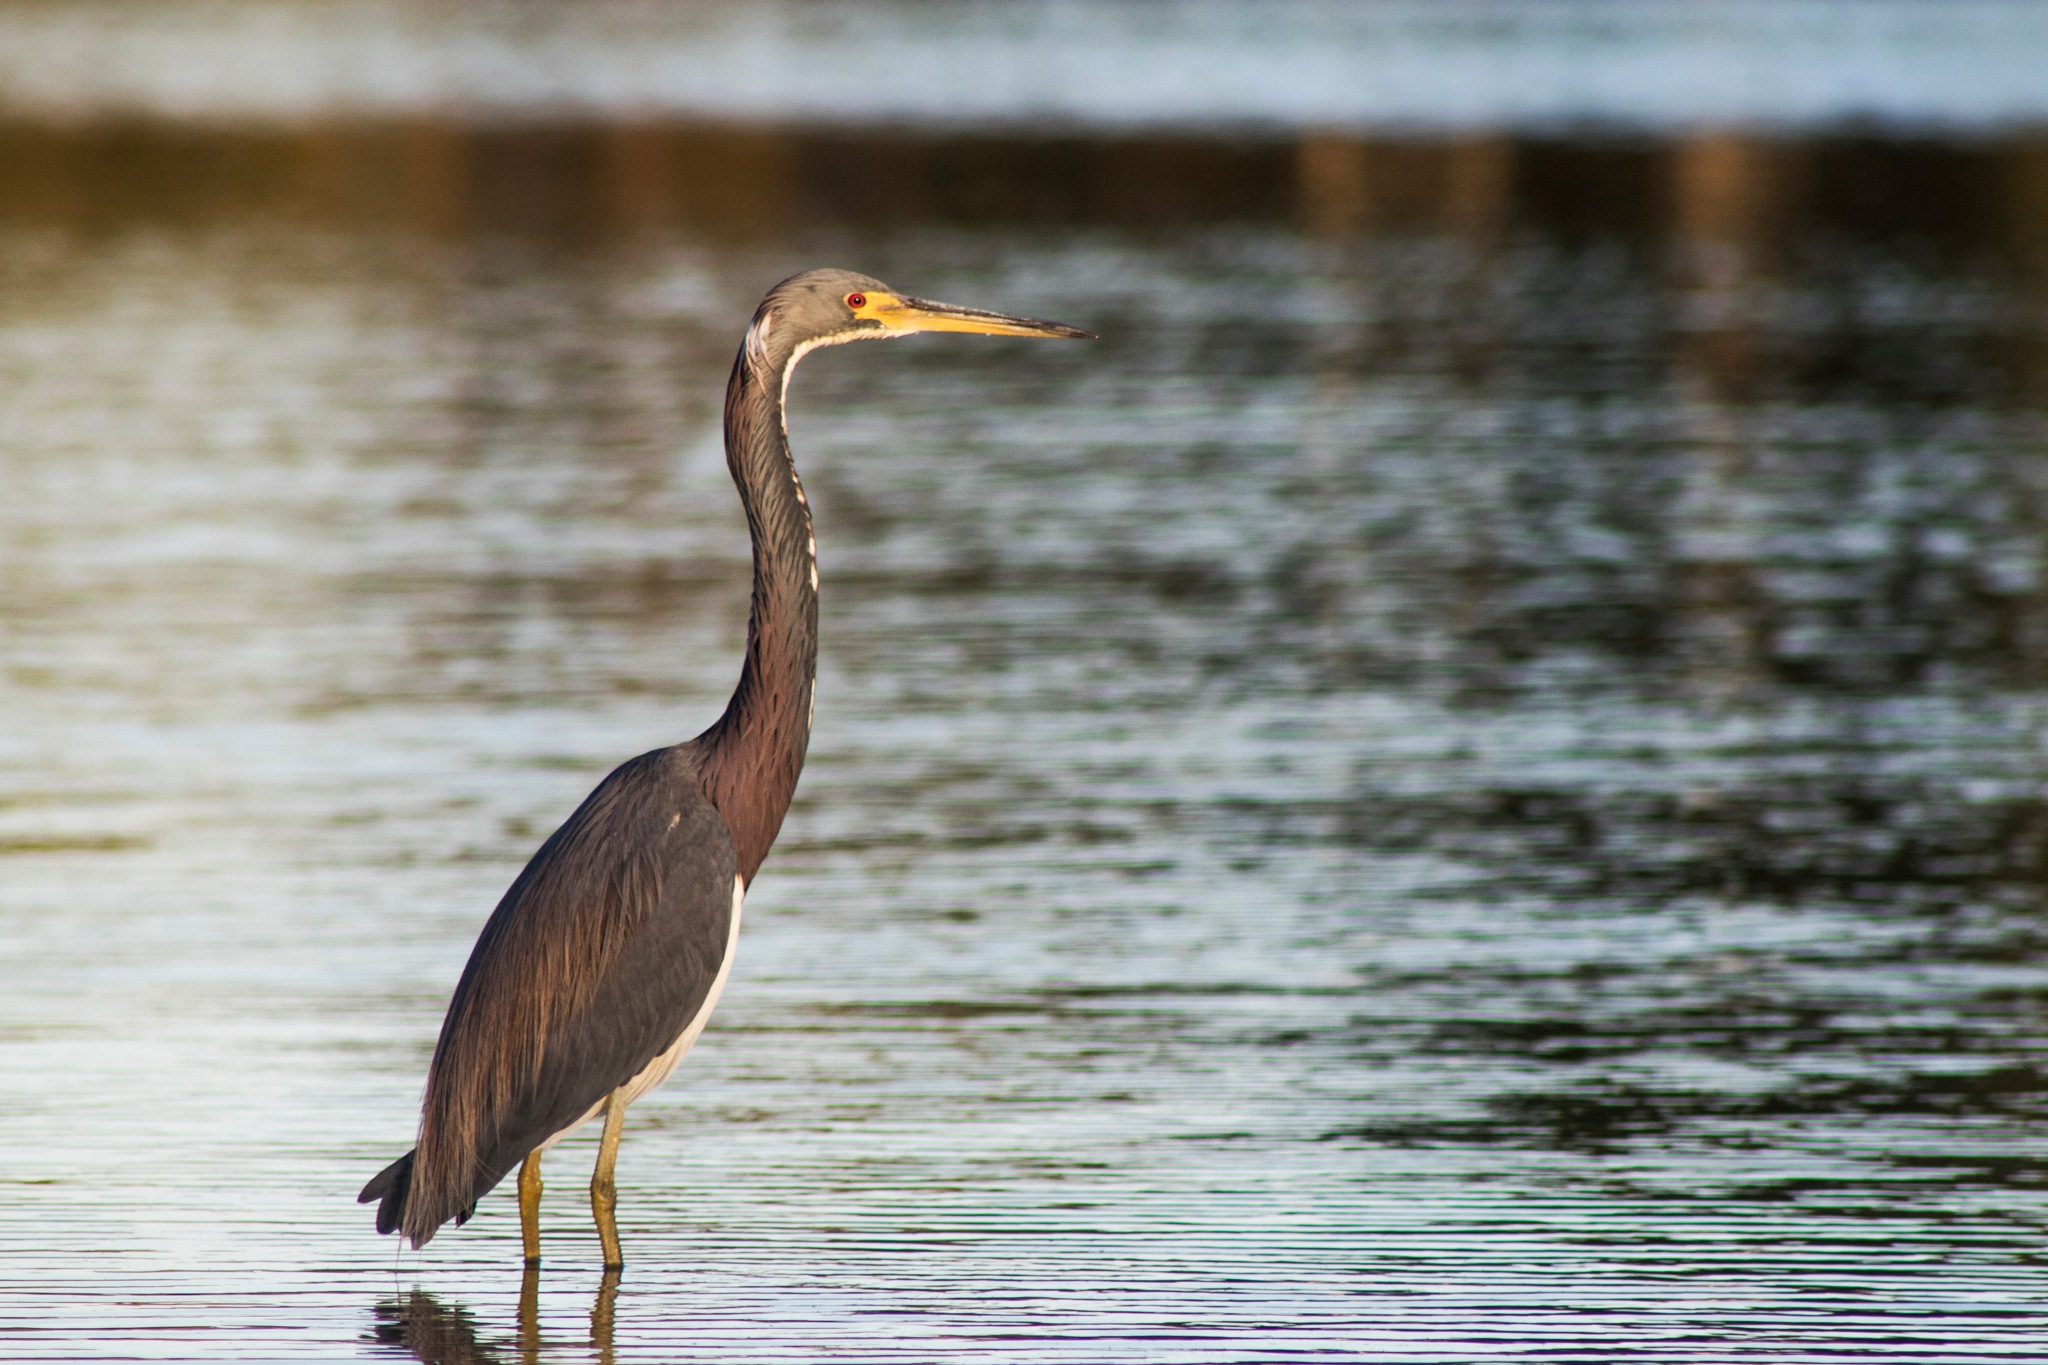 Great Blue Heron #2 by Nayan Mallick